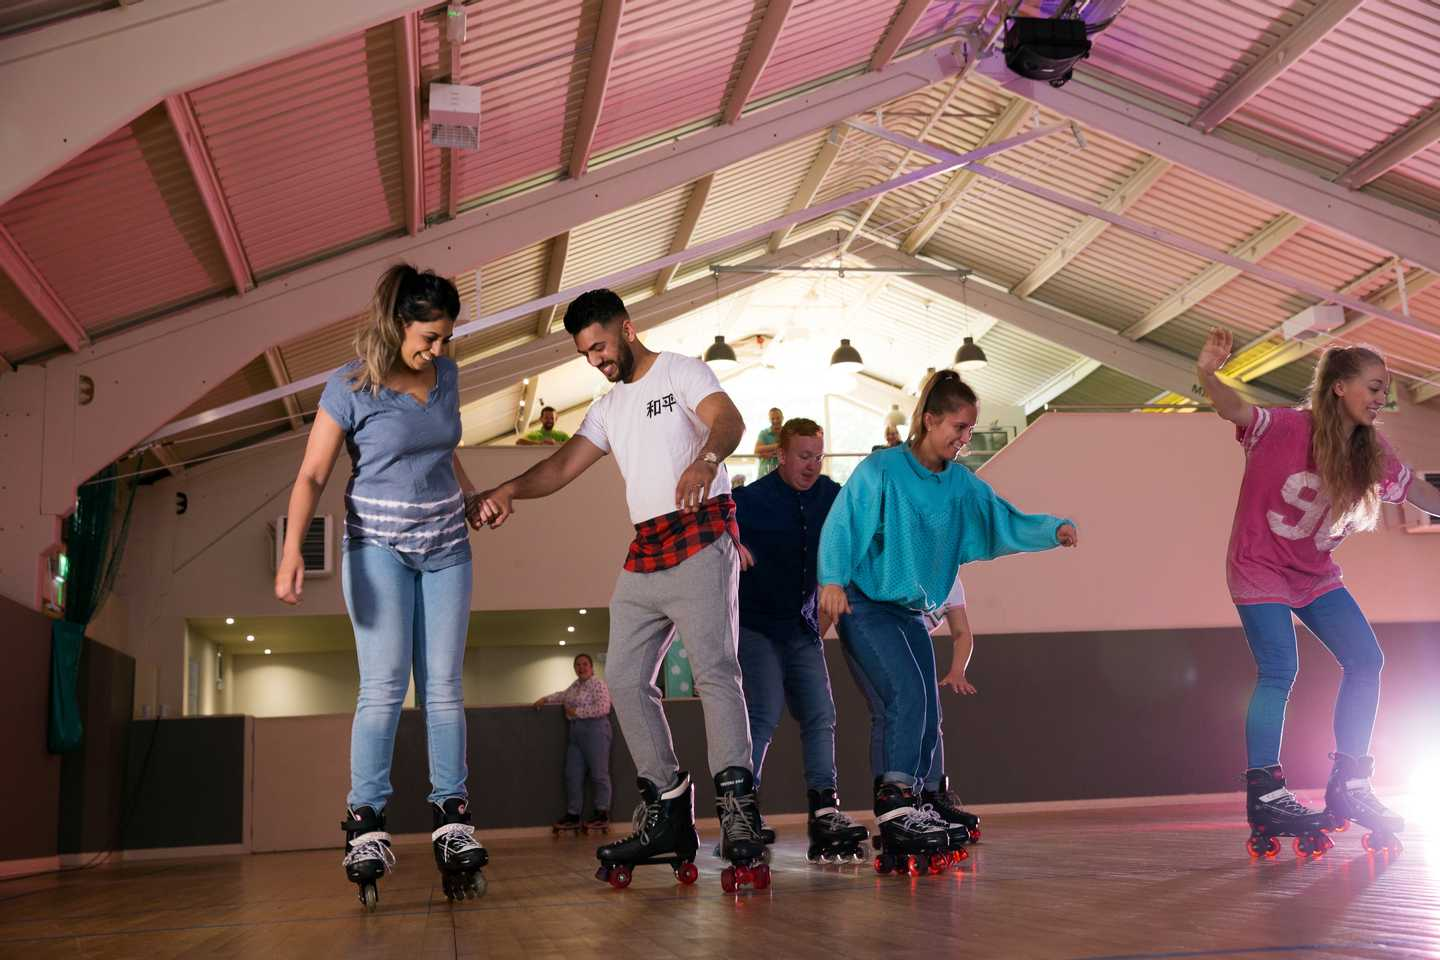 Guests at the roller disco